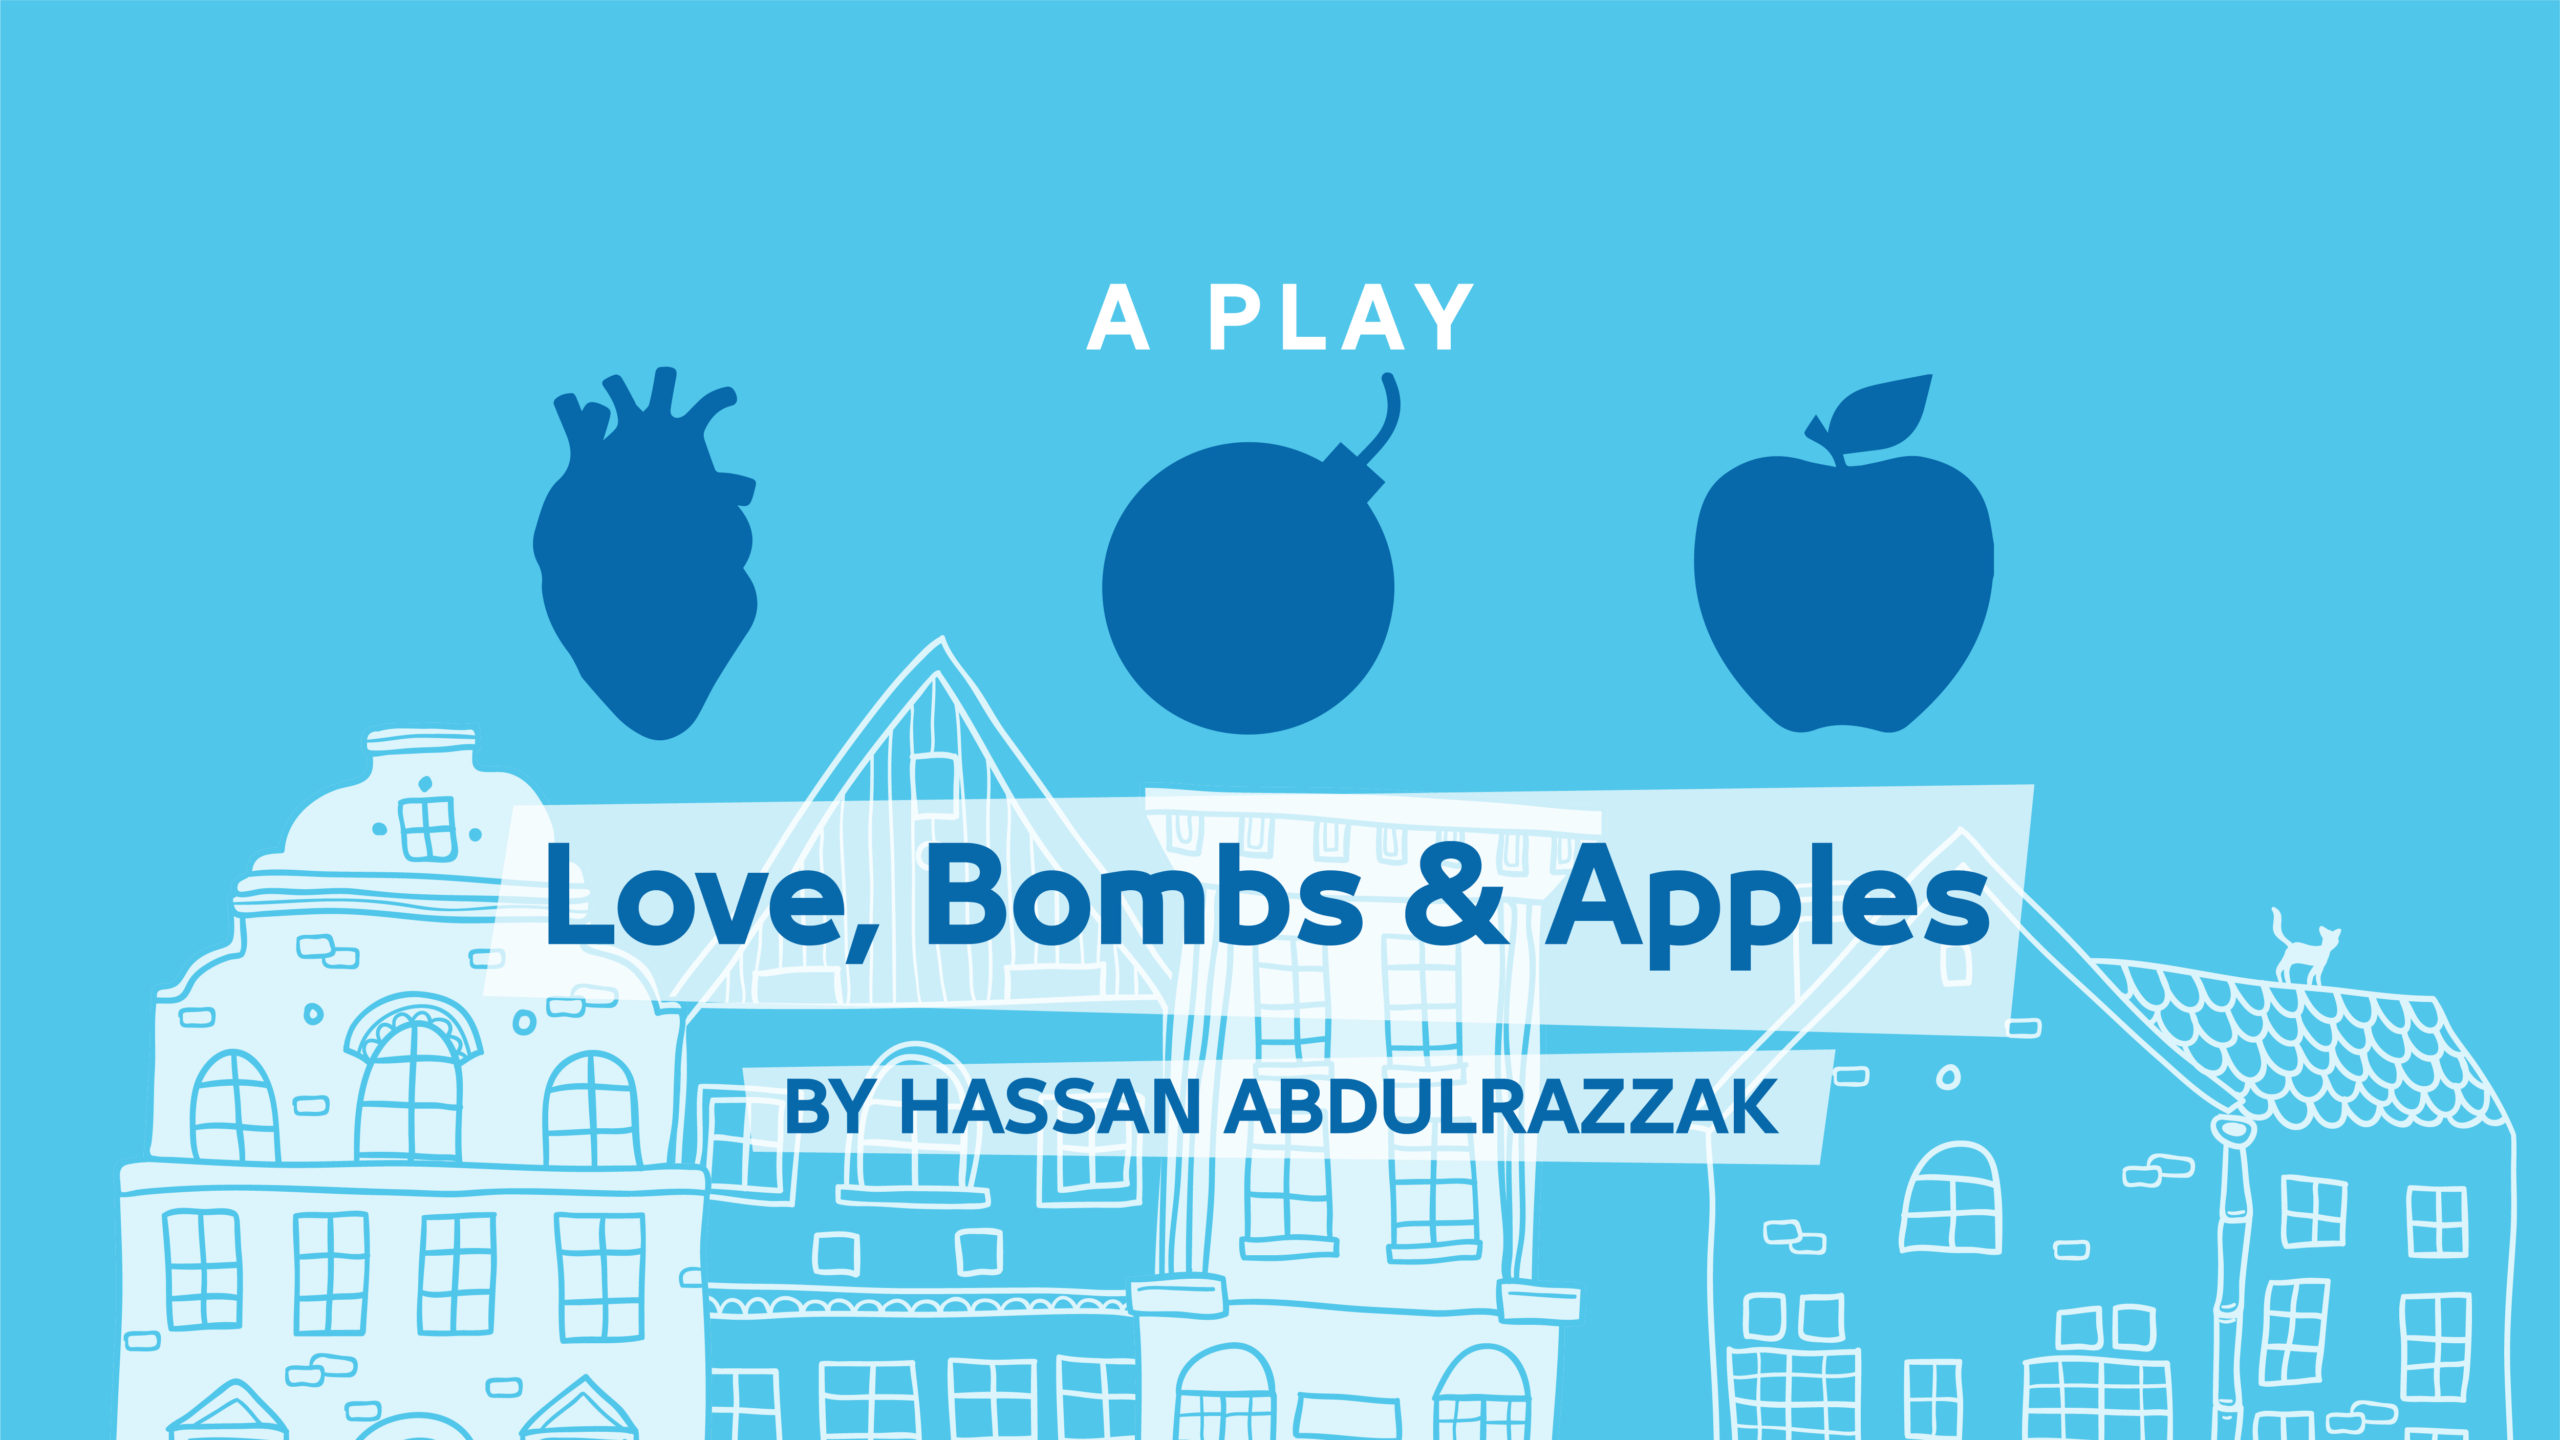 Love, Bombs, and Apples by Hassan Abdulrazzak